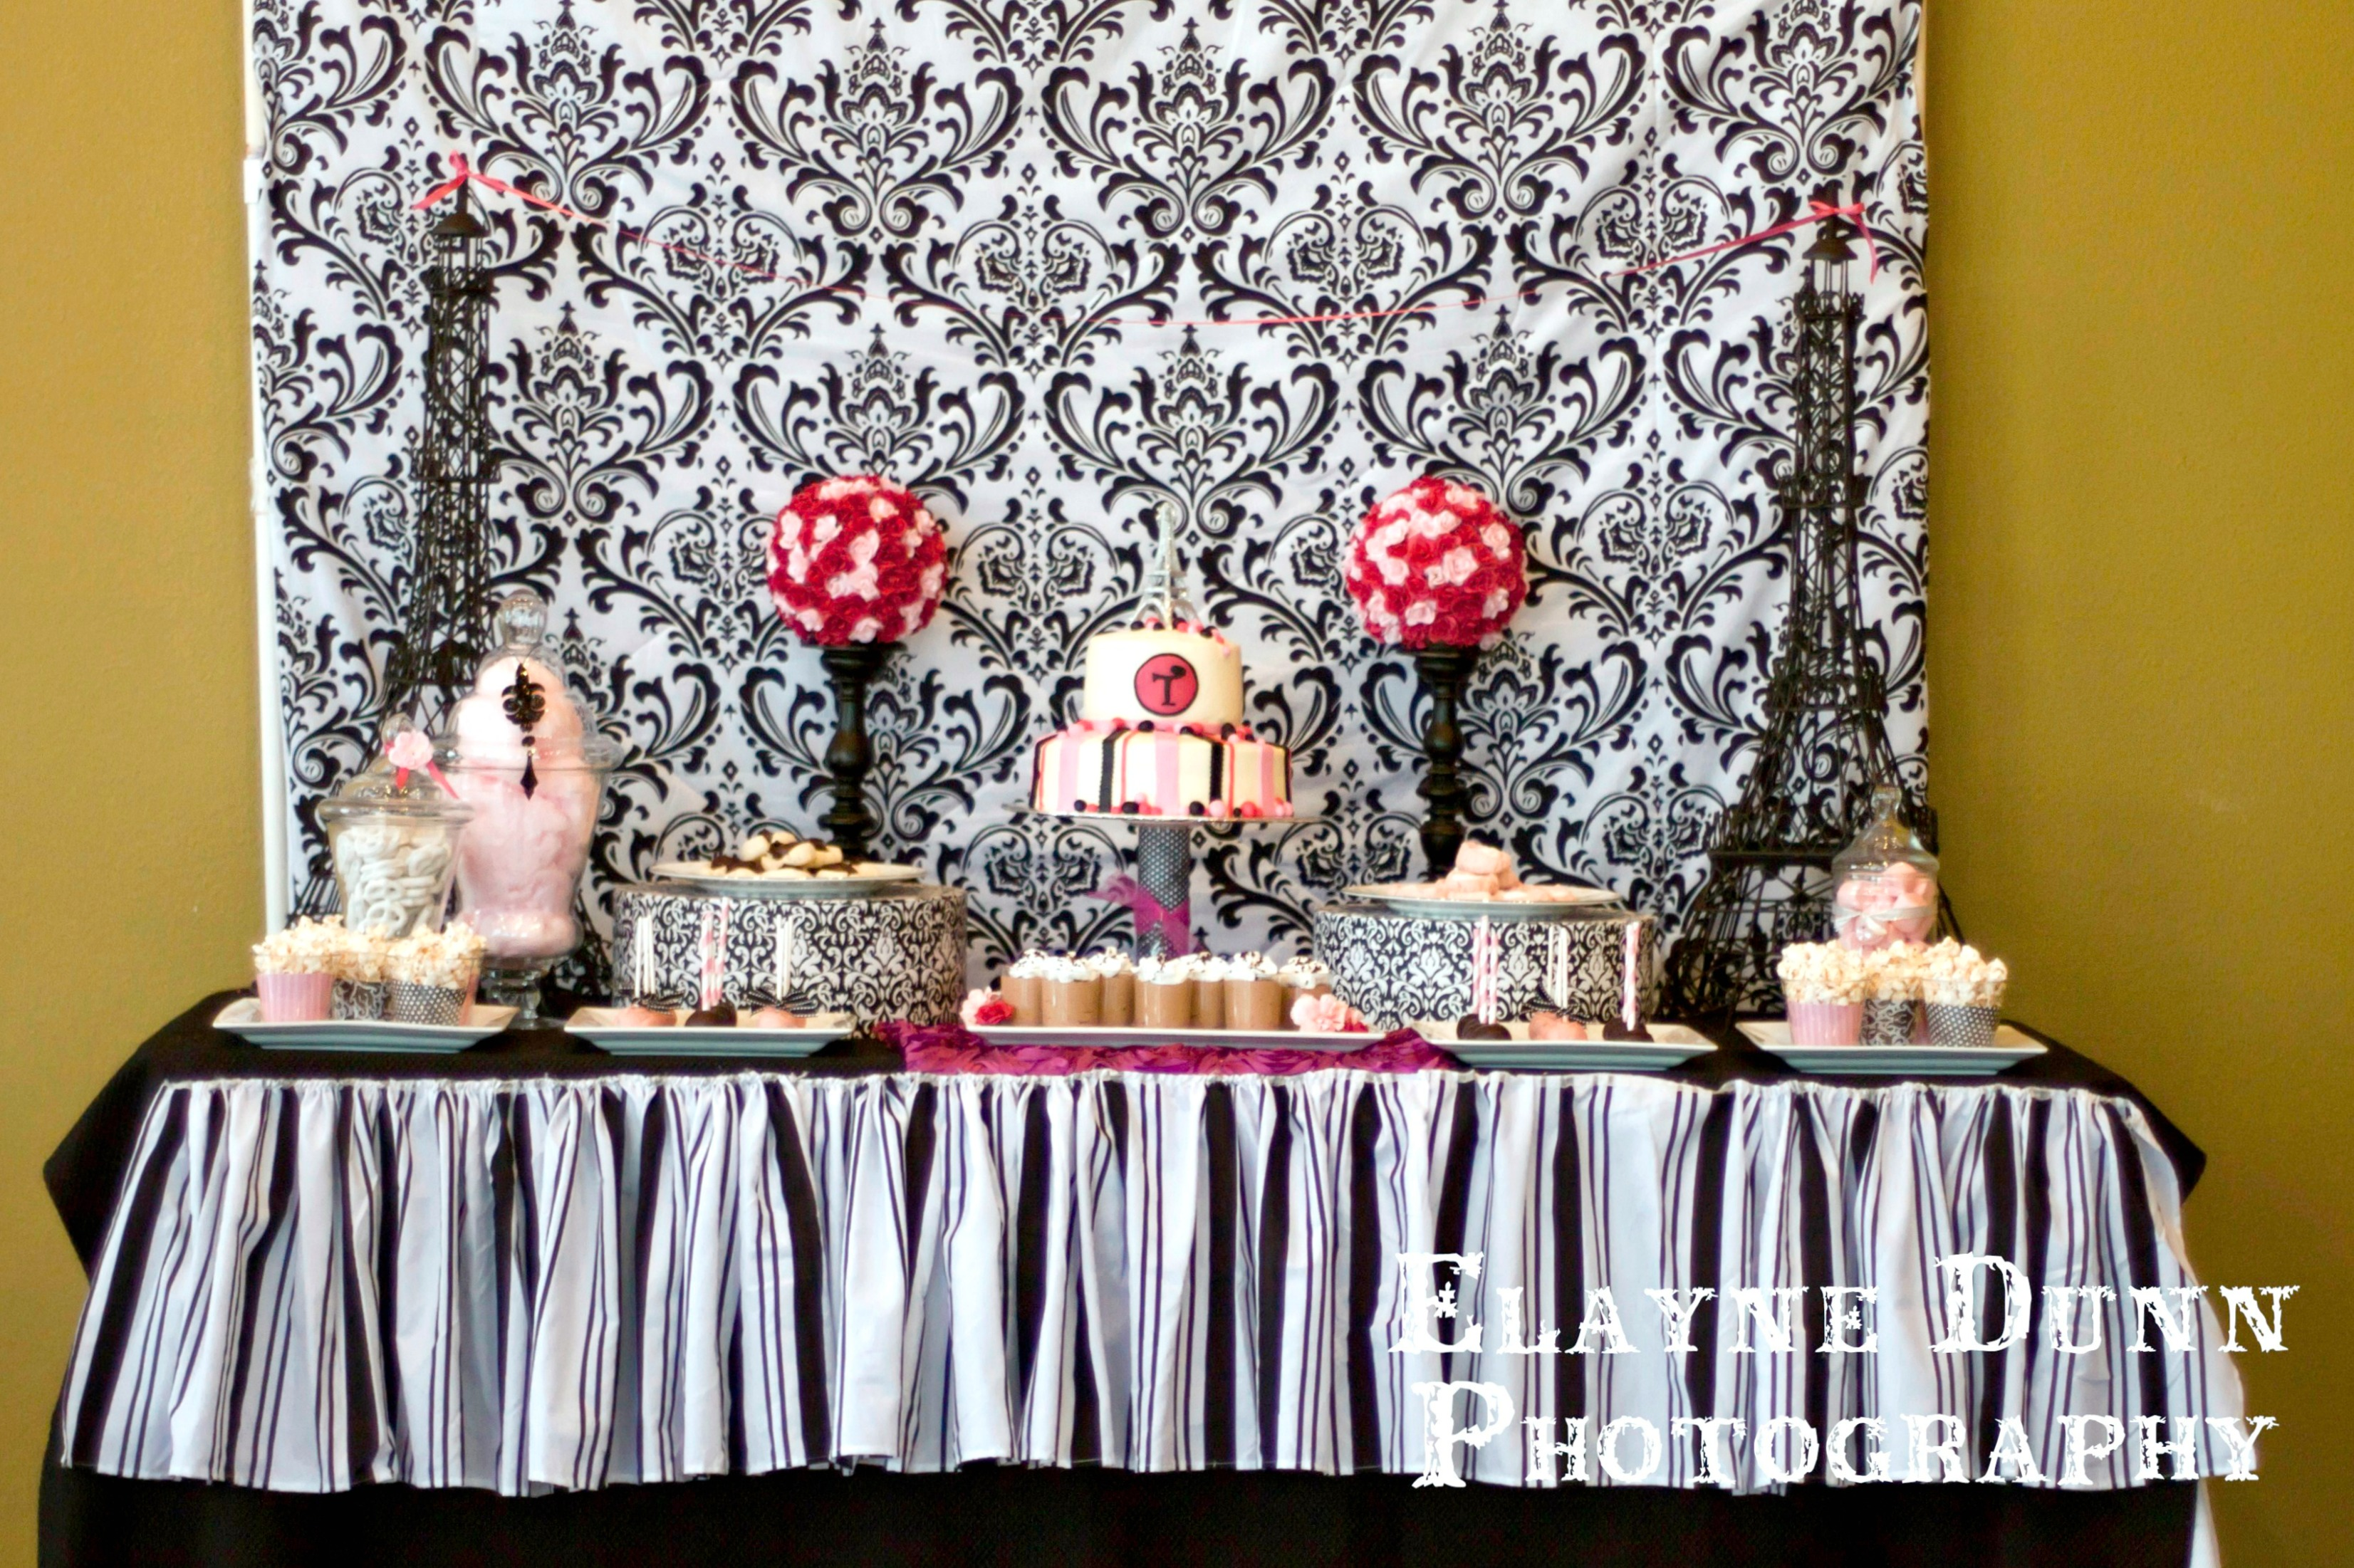 Paris Party Dessert Table_2